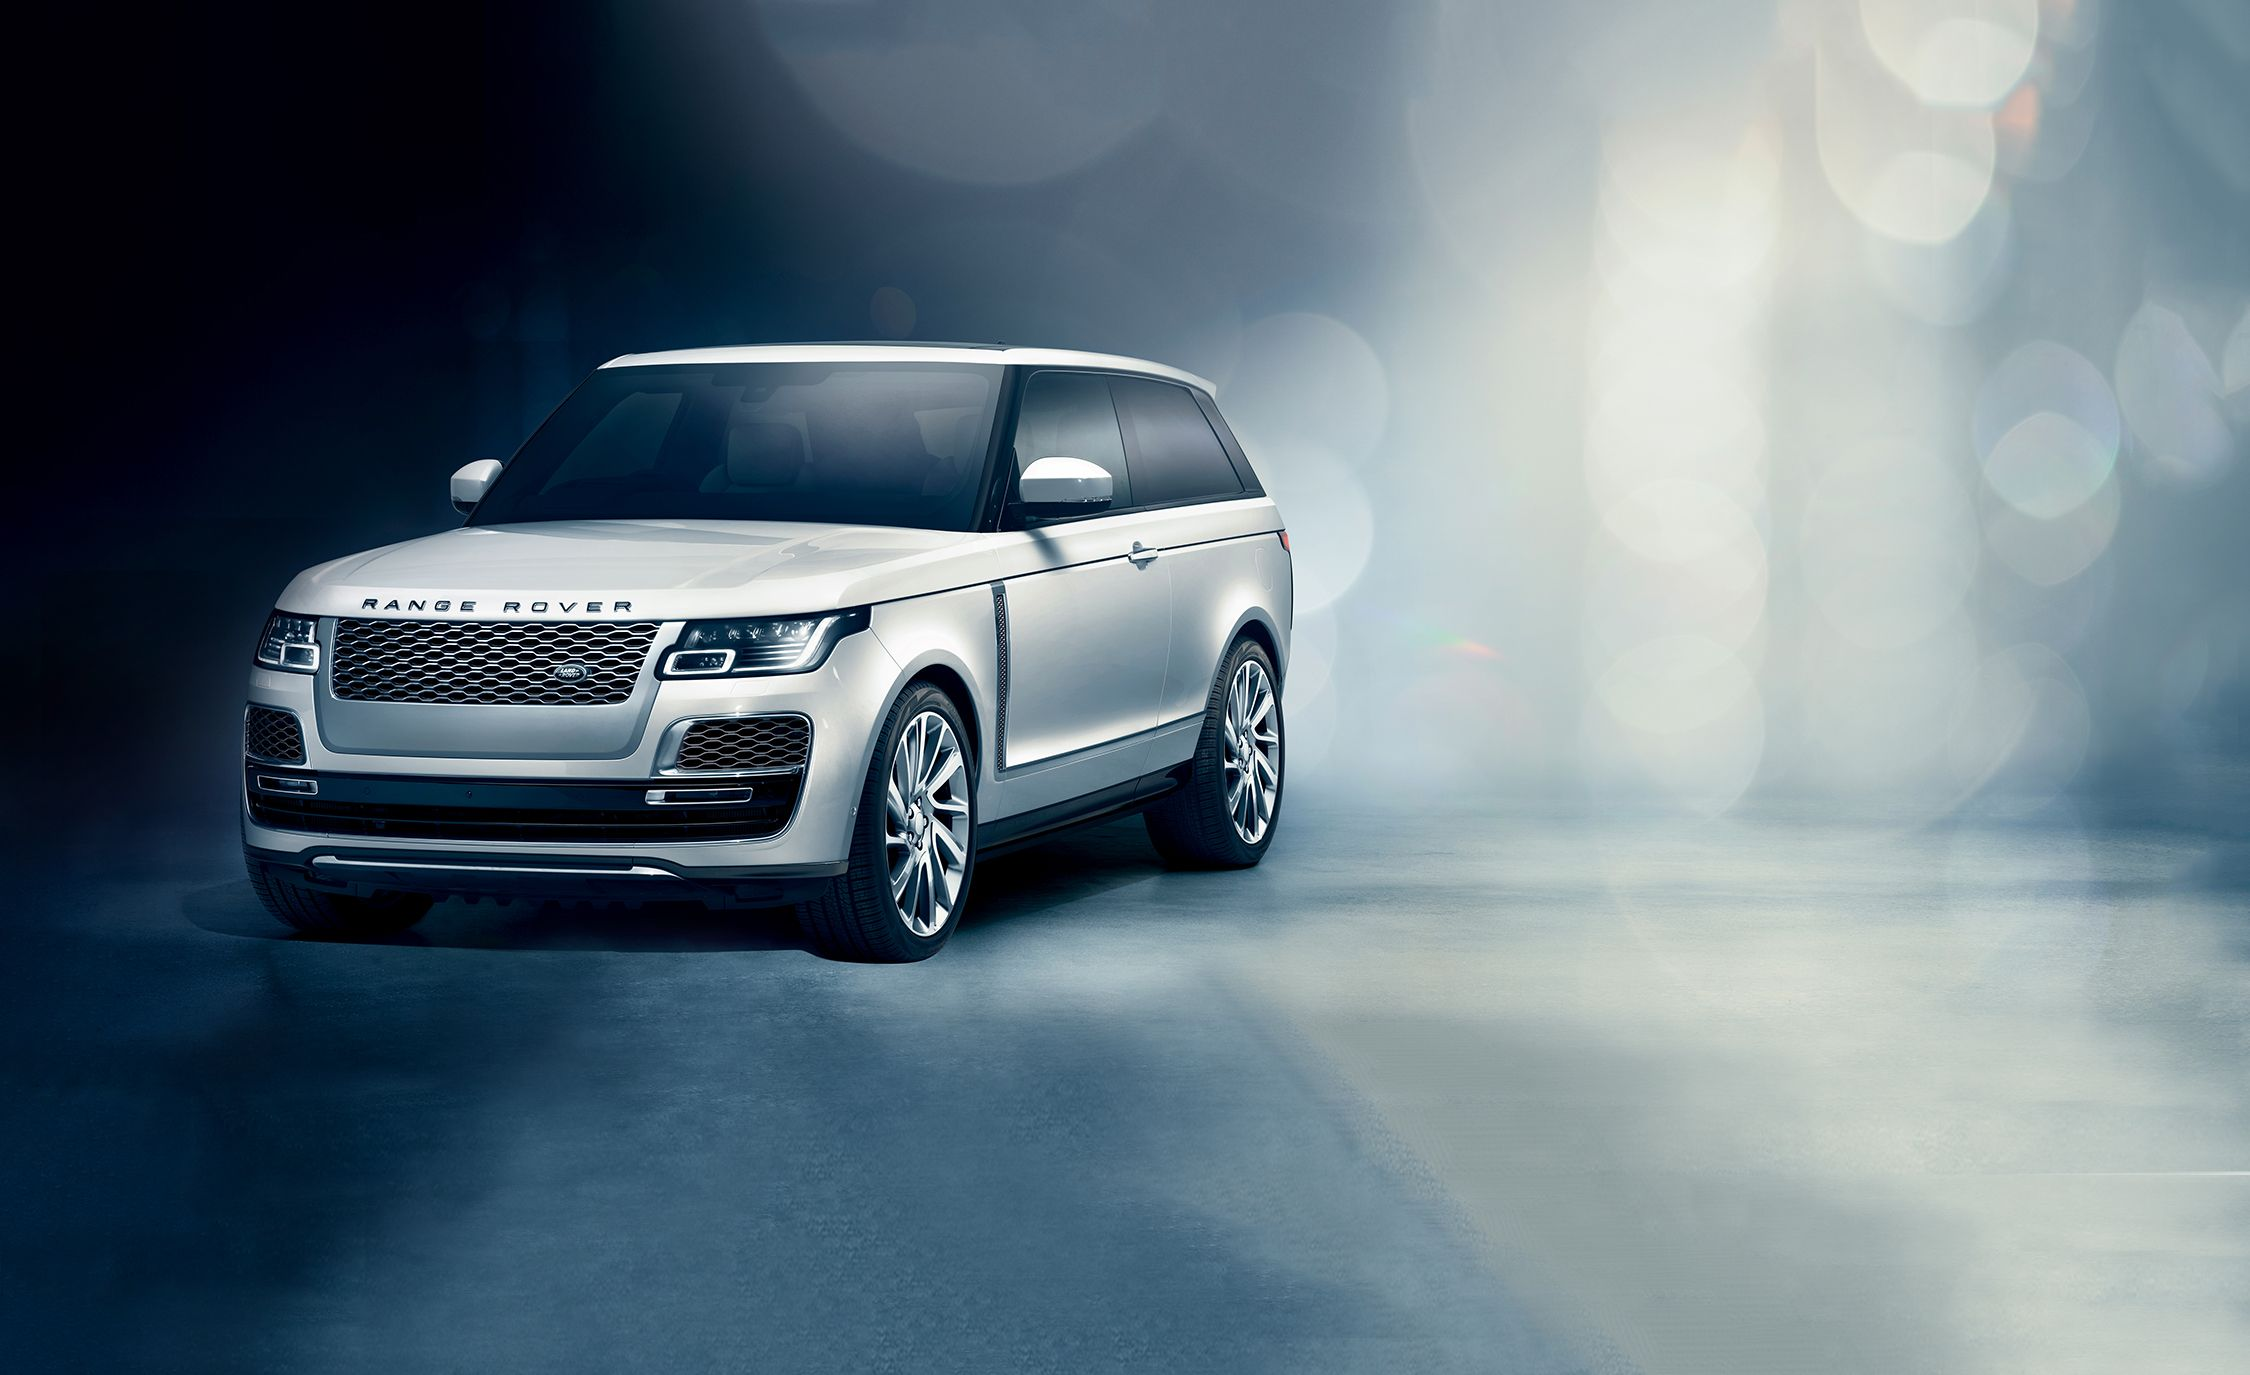 2017 Range Rover Supercharged Test Review Car And Driver Land Discovery Central Locking Wiring Diagram